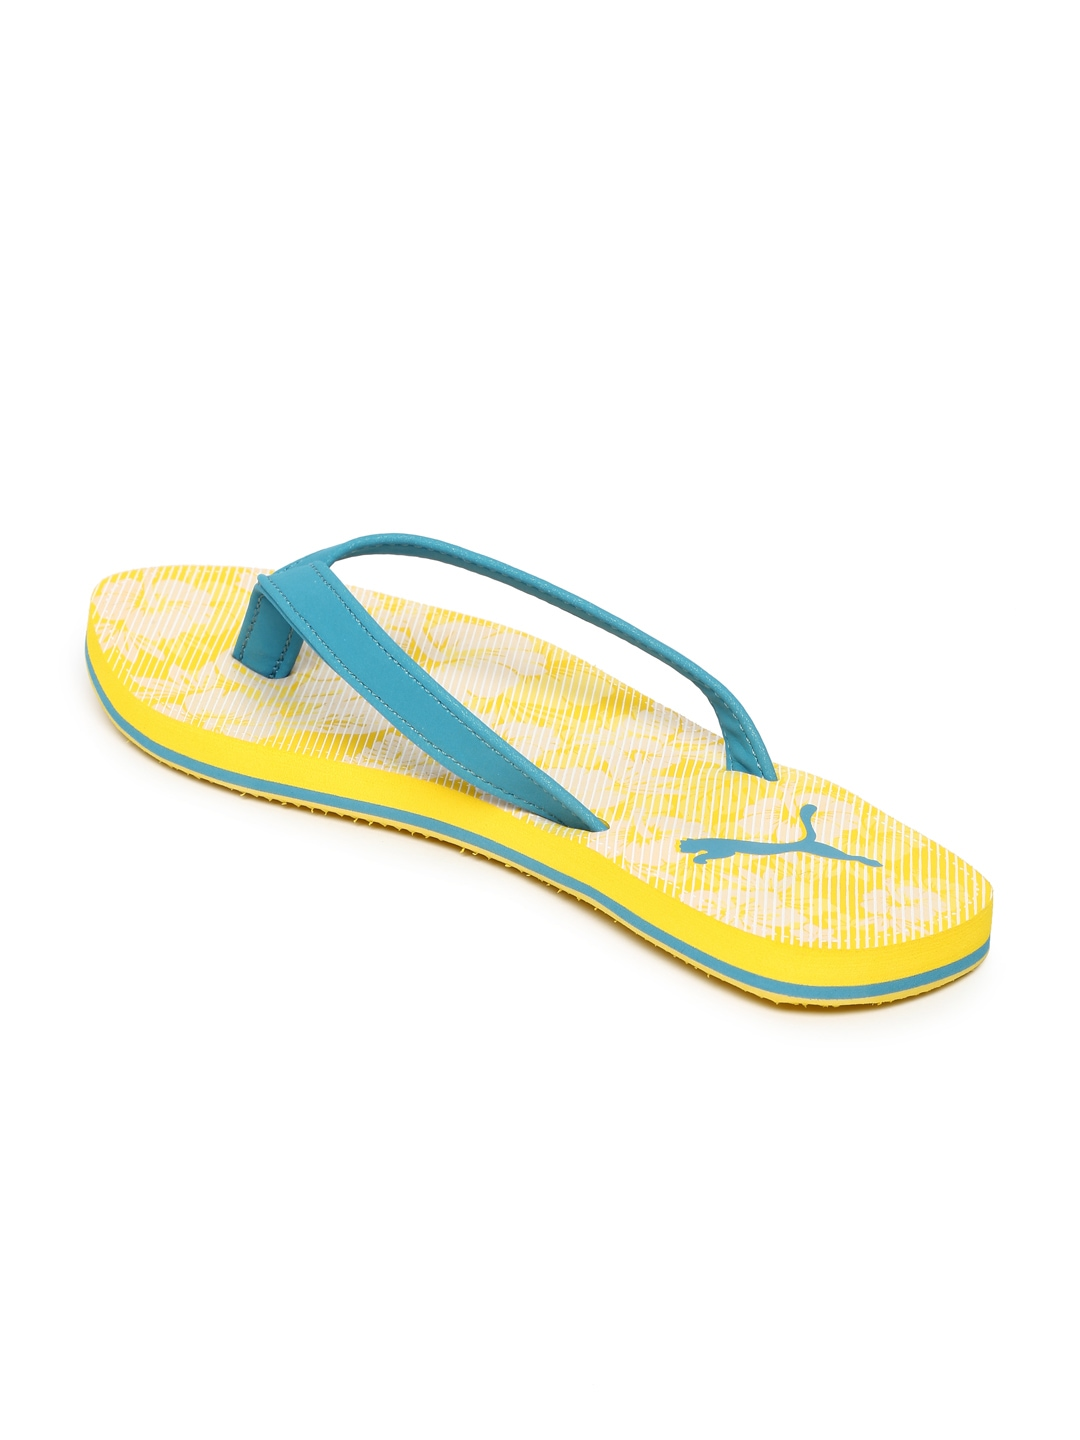 myntra puma women yellow blue printed flip flops 890072 buy myntra puma flip flops at best. Black Bedroom Furniture Sets. Home Design Ideas